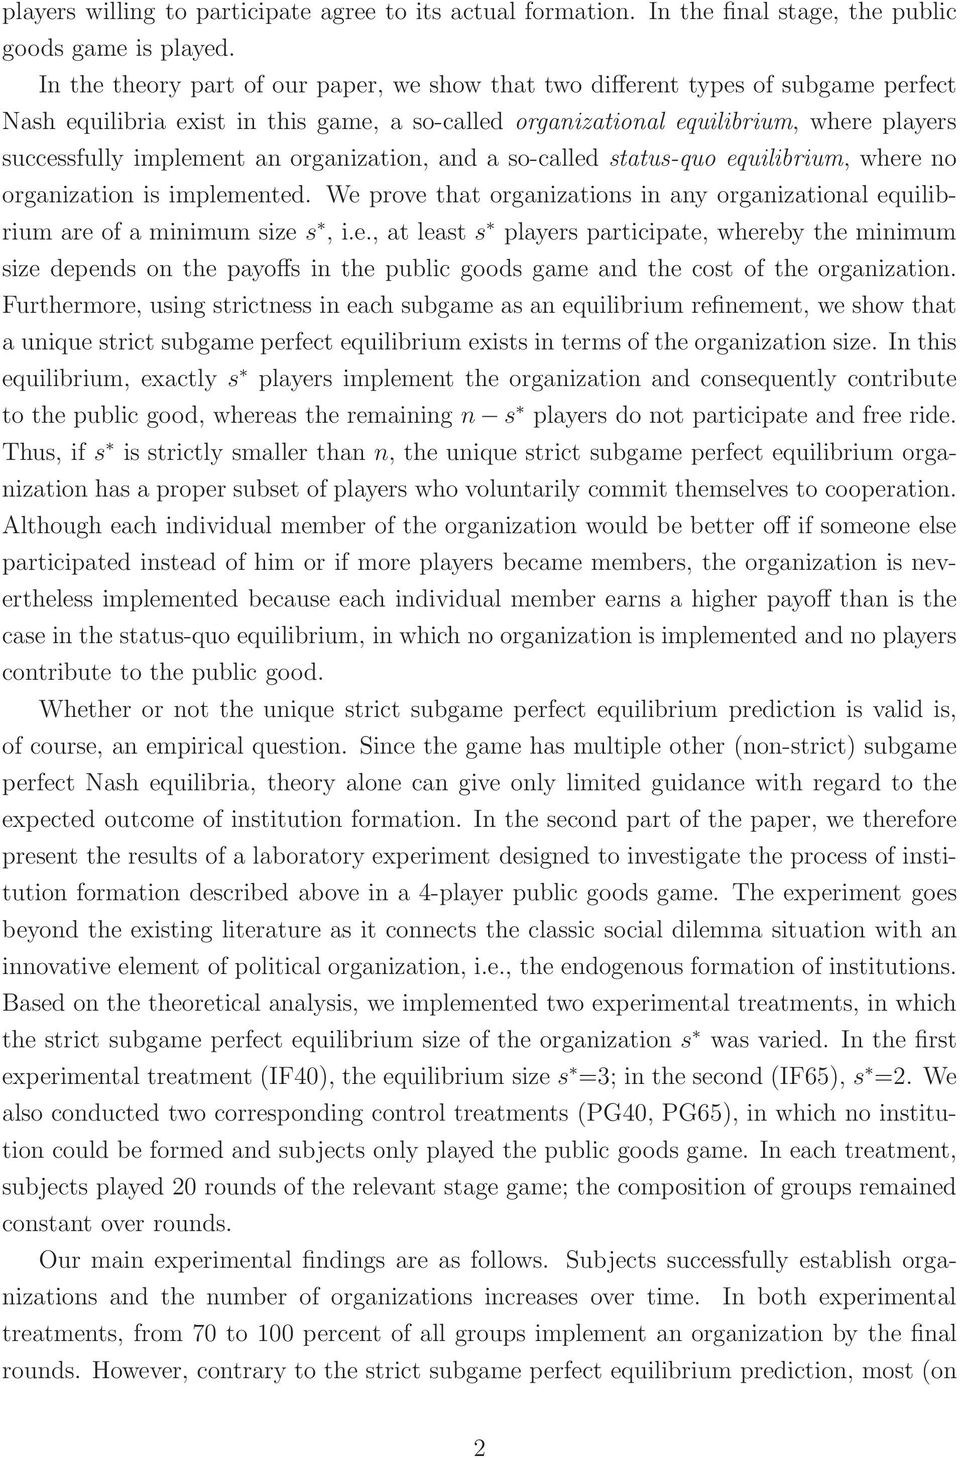 an organization, and a so-called status-quo equilibrium, where no organization is implemented. We prove that organizations in any organizational equilibrium are of a minimum size s, i.e., at least s players participate, whereby the minimum size depends on the payoffs in the public goods game and the cost of the organization.